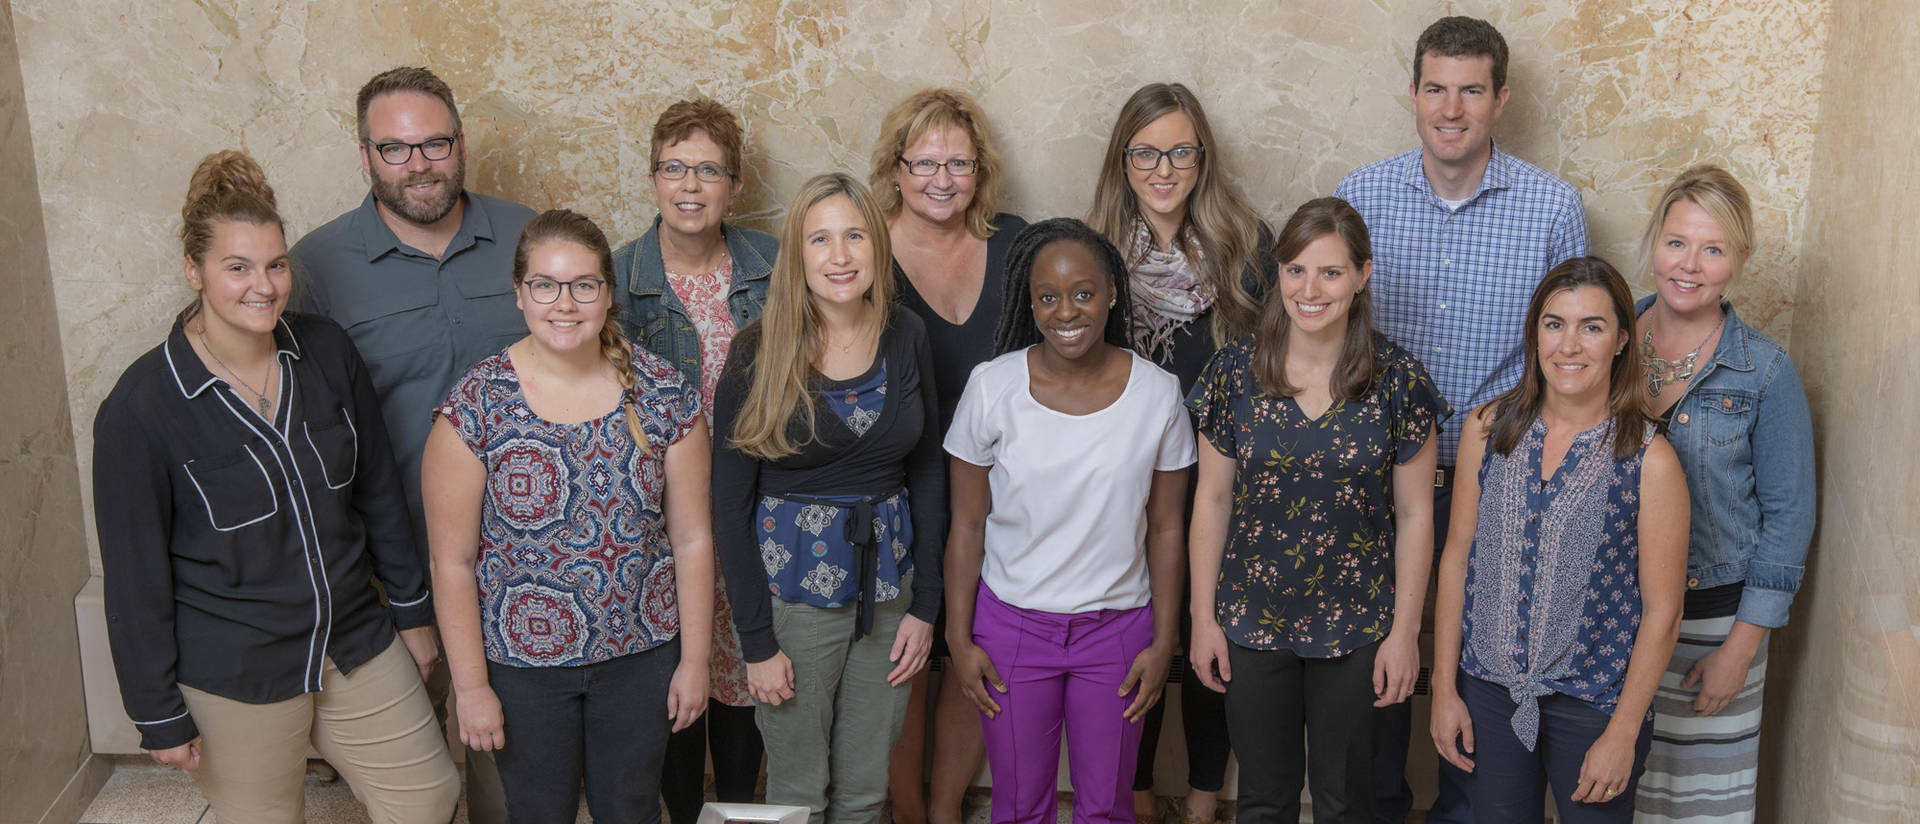 Counseling Services Group Photo